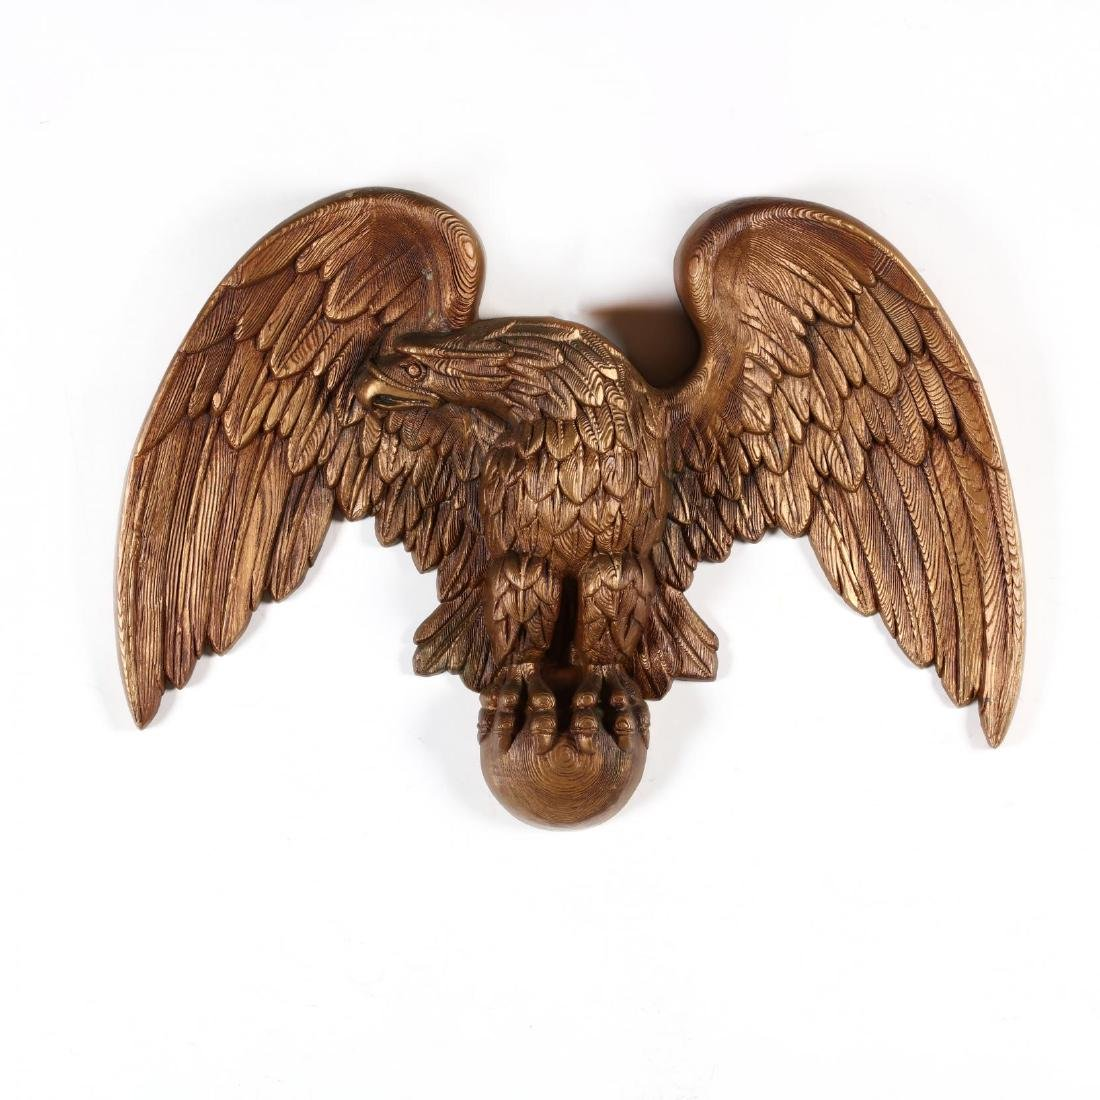 Burwood Products, Federal Style Eagle Wall Mount